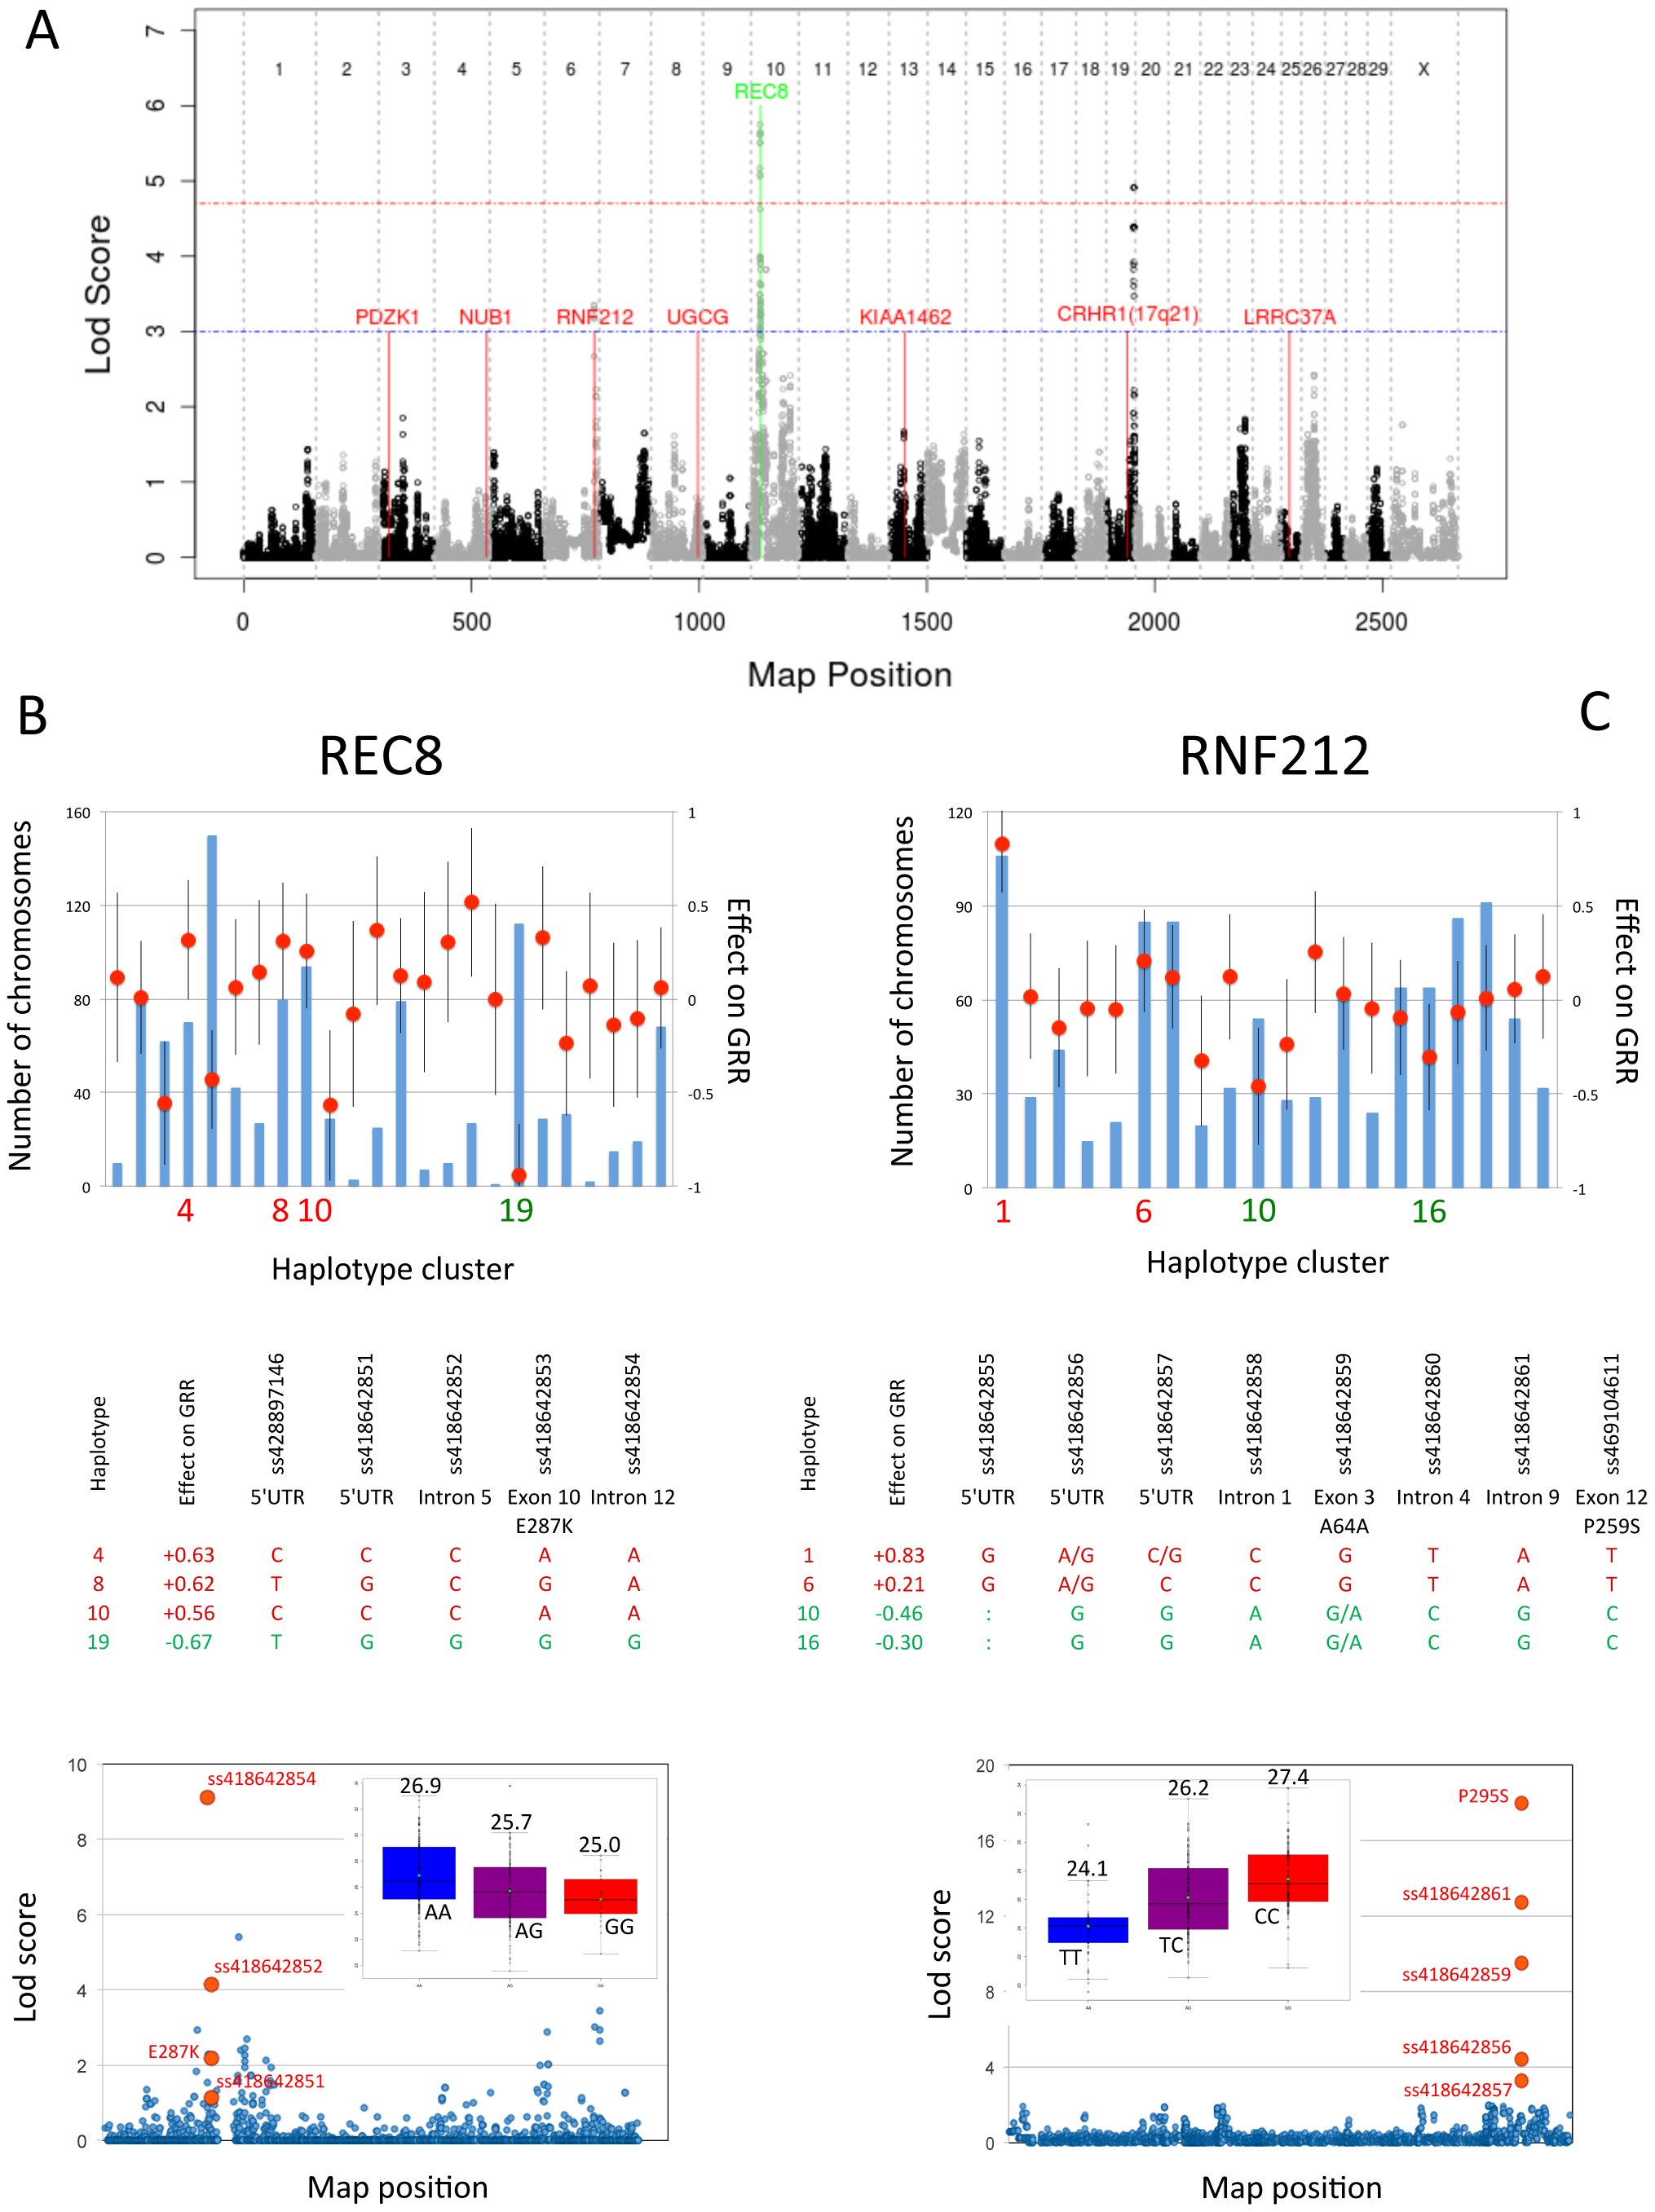 Genome-wide lod score profiles, observed counts and effects on global recombination rate.